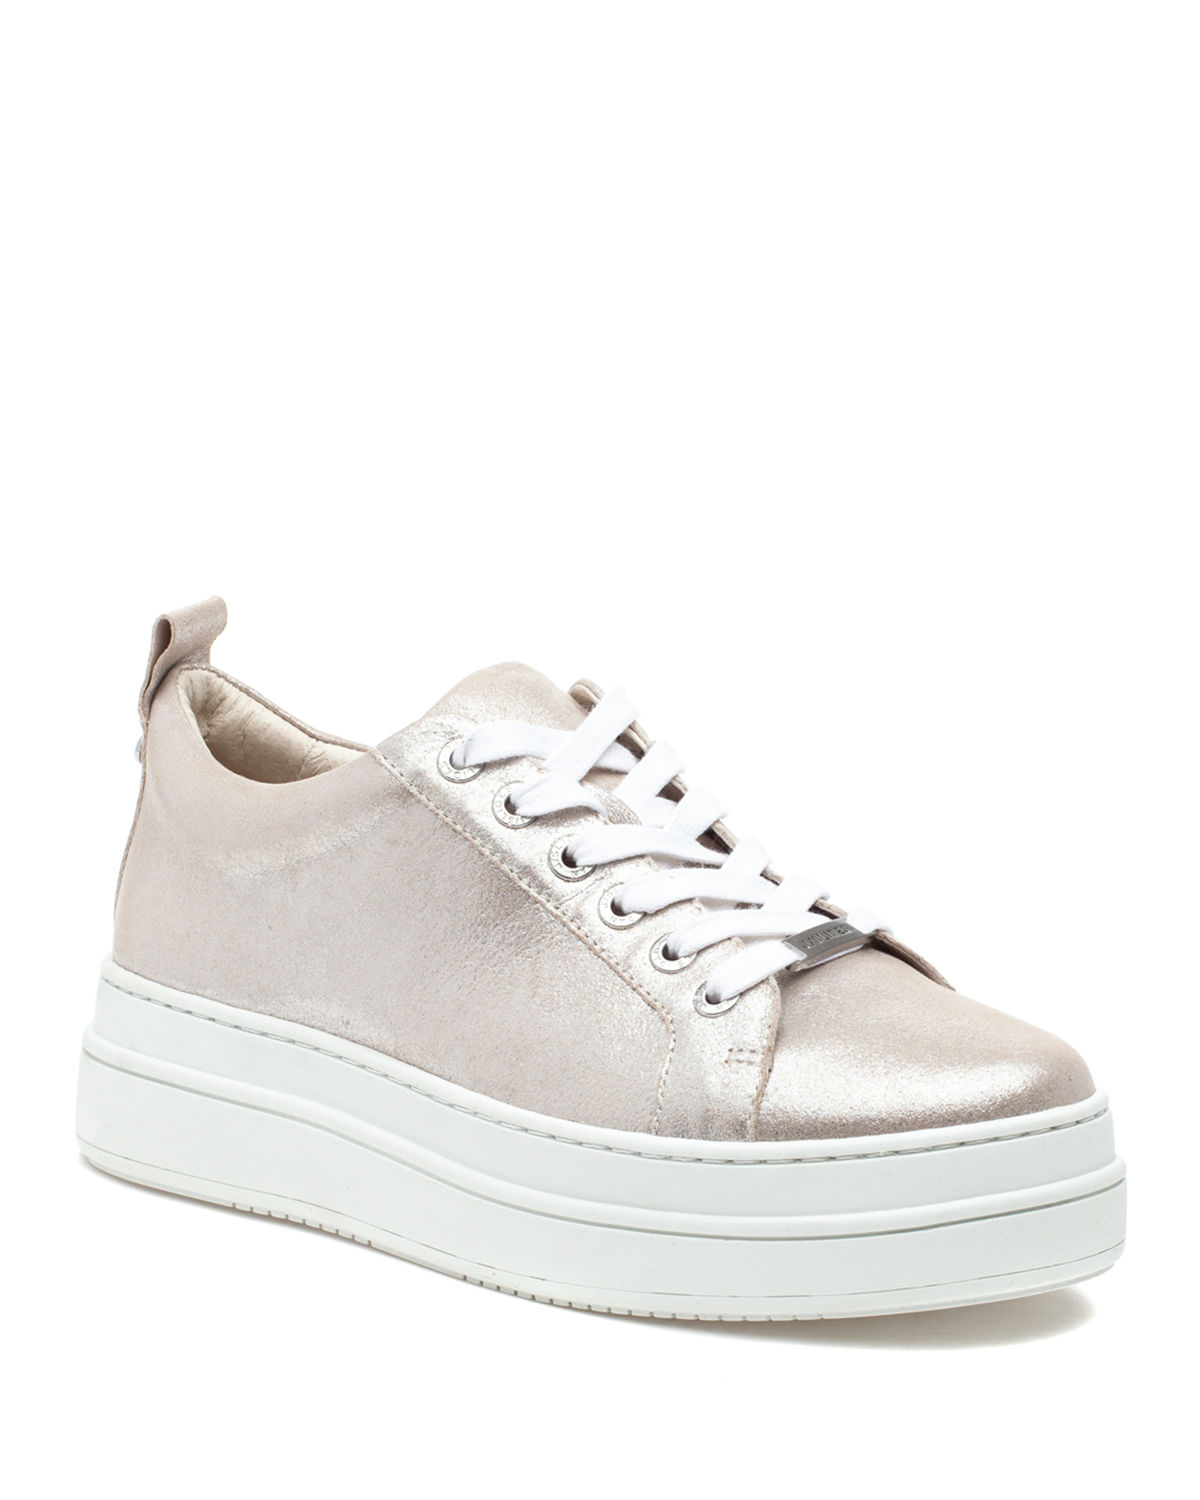 Jslides NOCA LEATHER LOW-TOP SNEAKERS